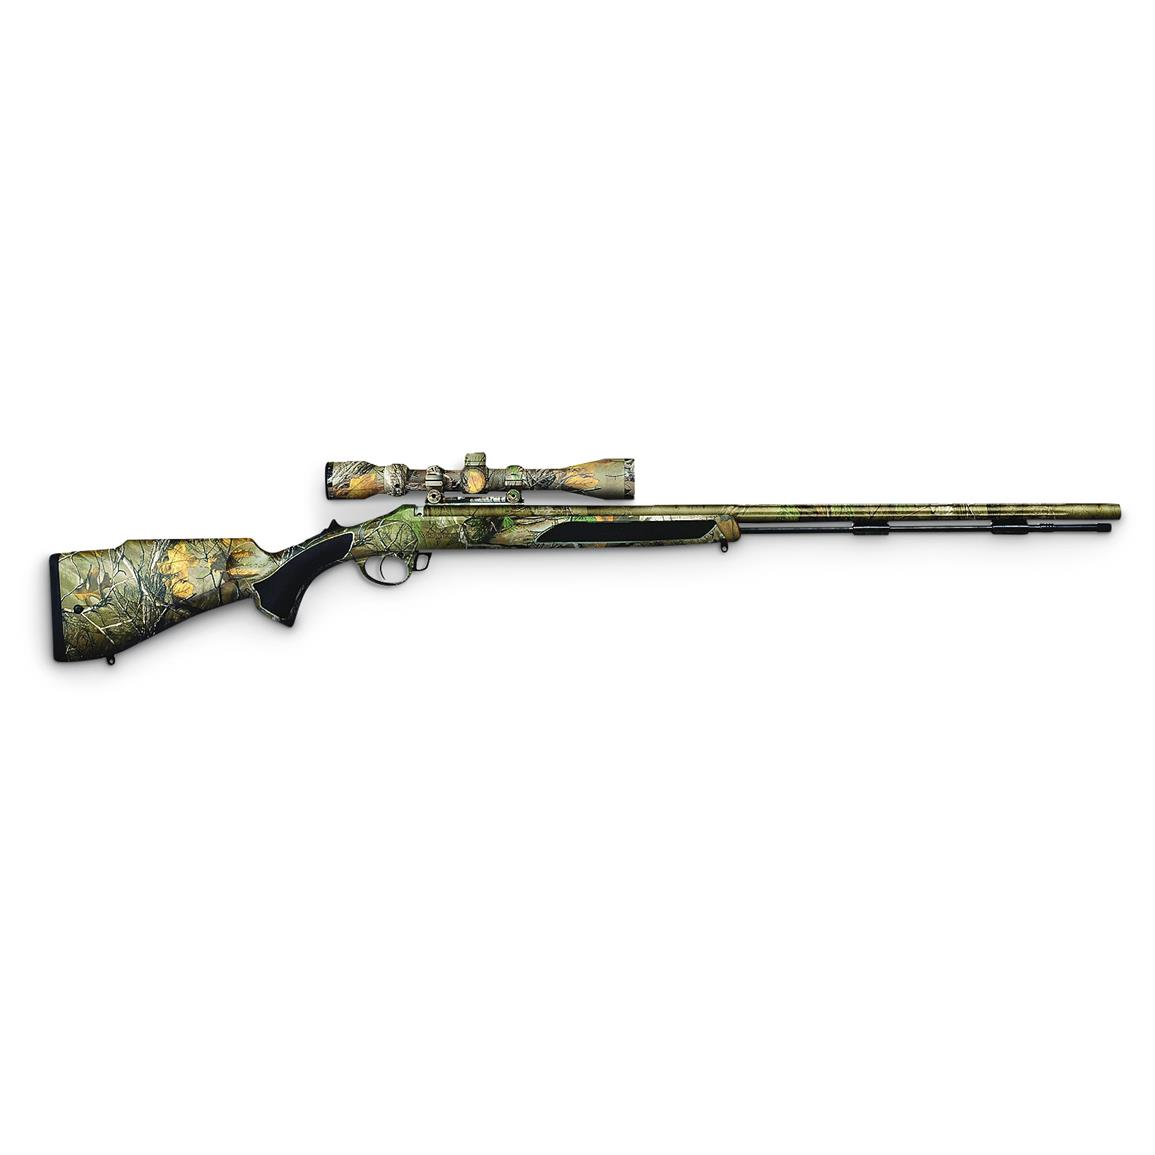 Traditions Vortek StrikerFire LDR .50 cal. Black Powder Rifle with Scope, Realtree Xtra